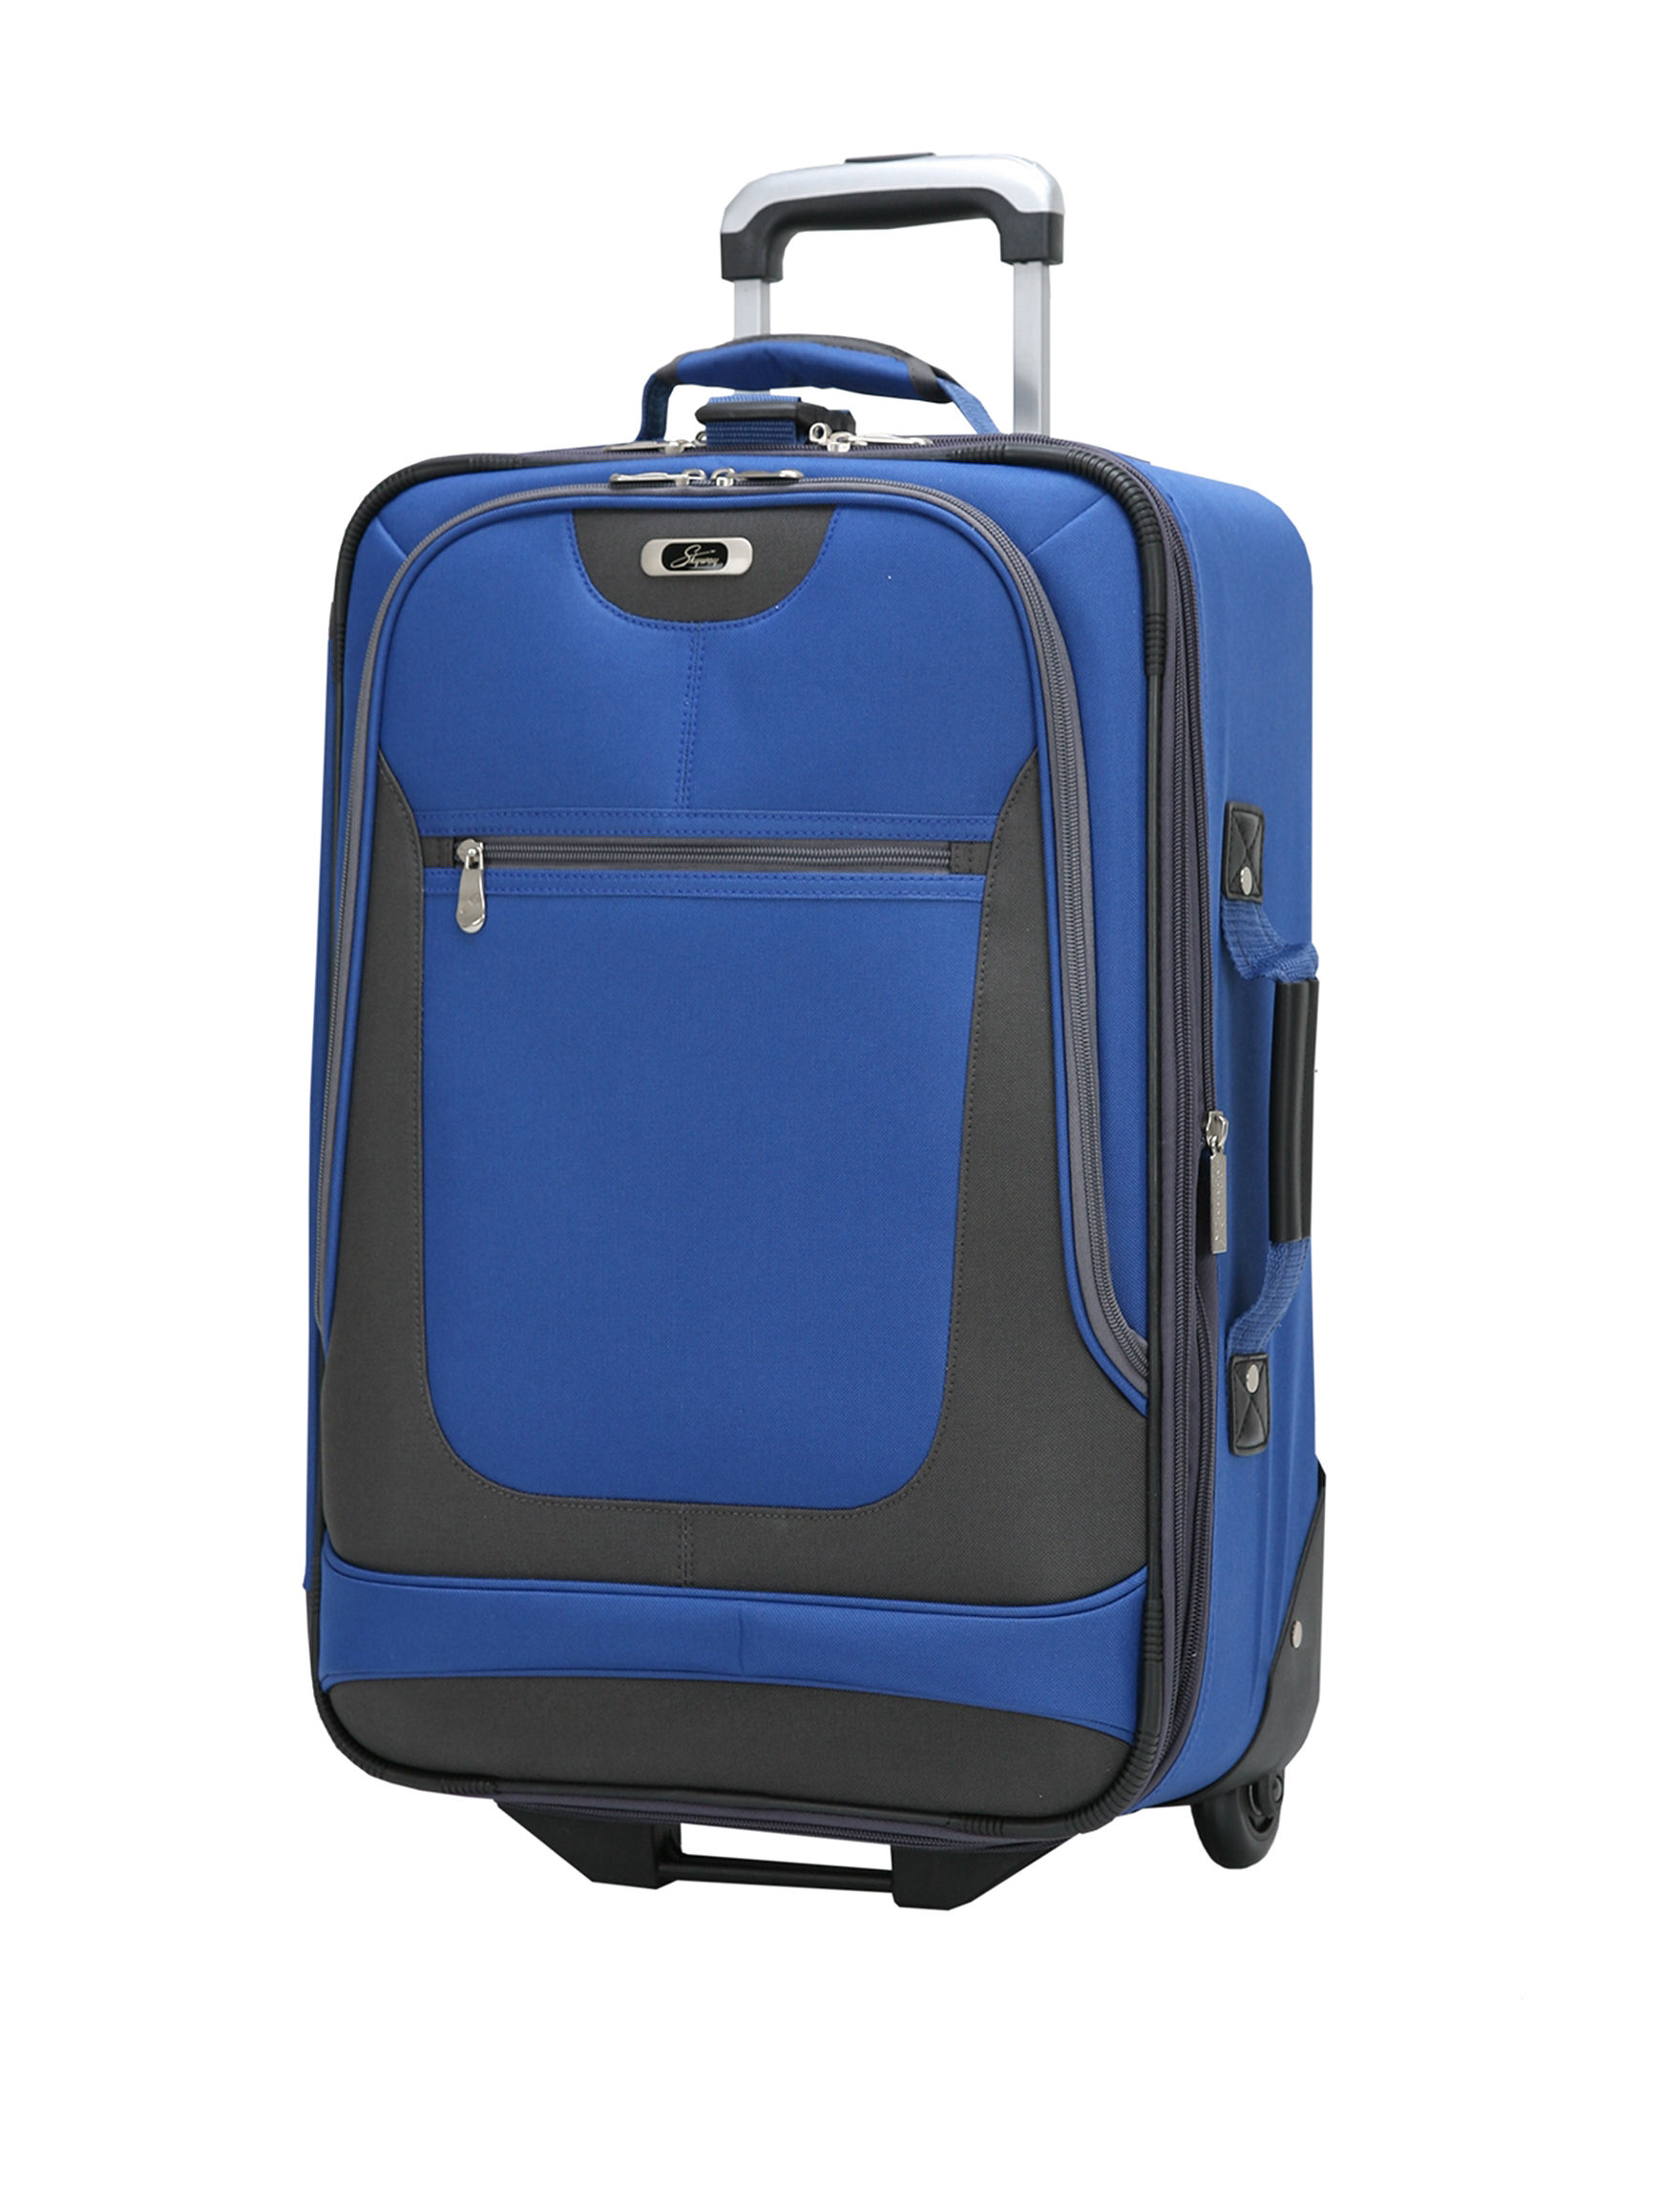 Skyway Blue Upright Spinners